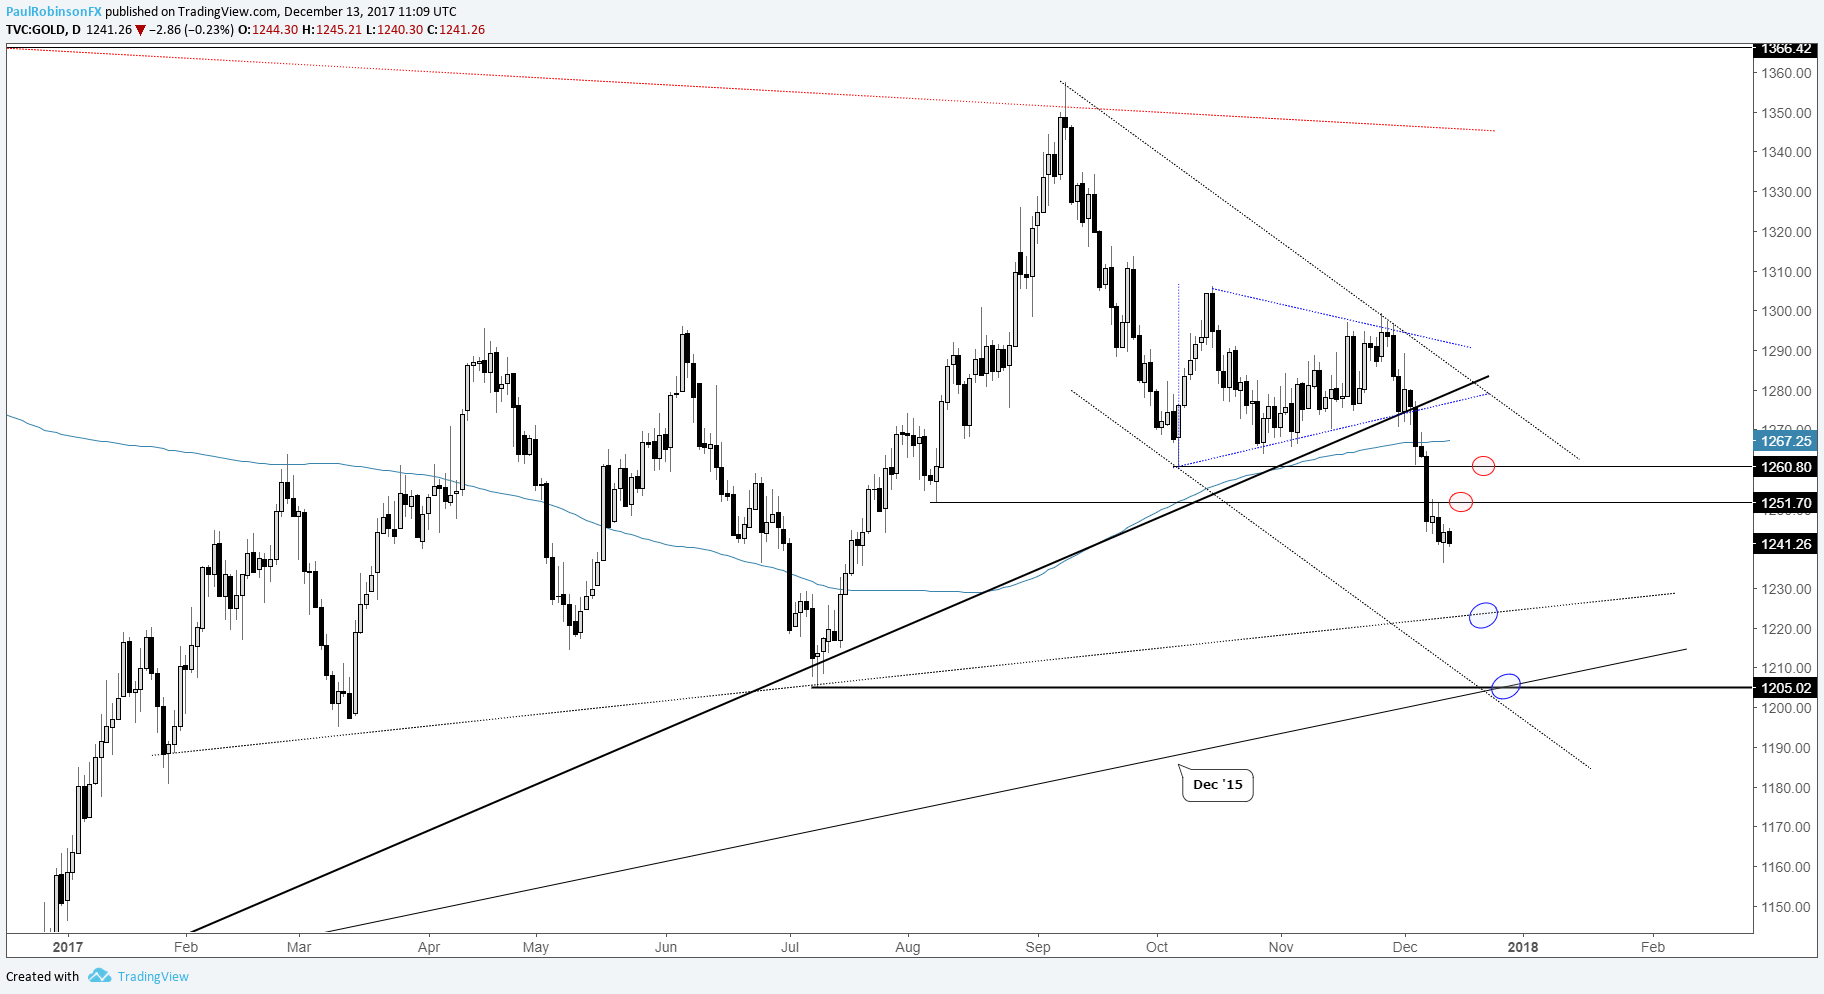 Silver Technical Outlook: Declining Towards Long-term